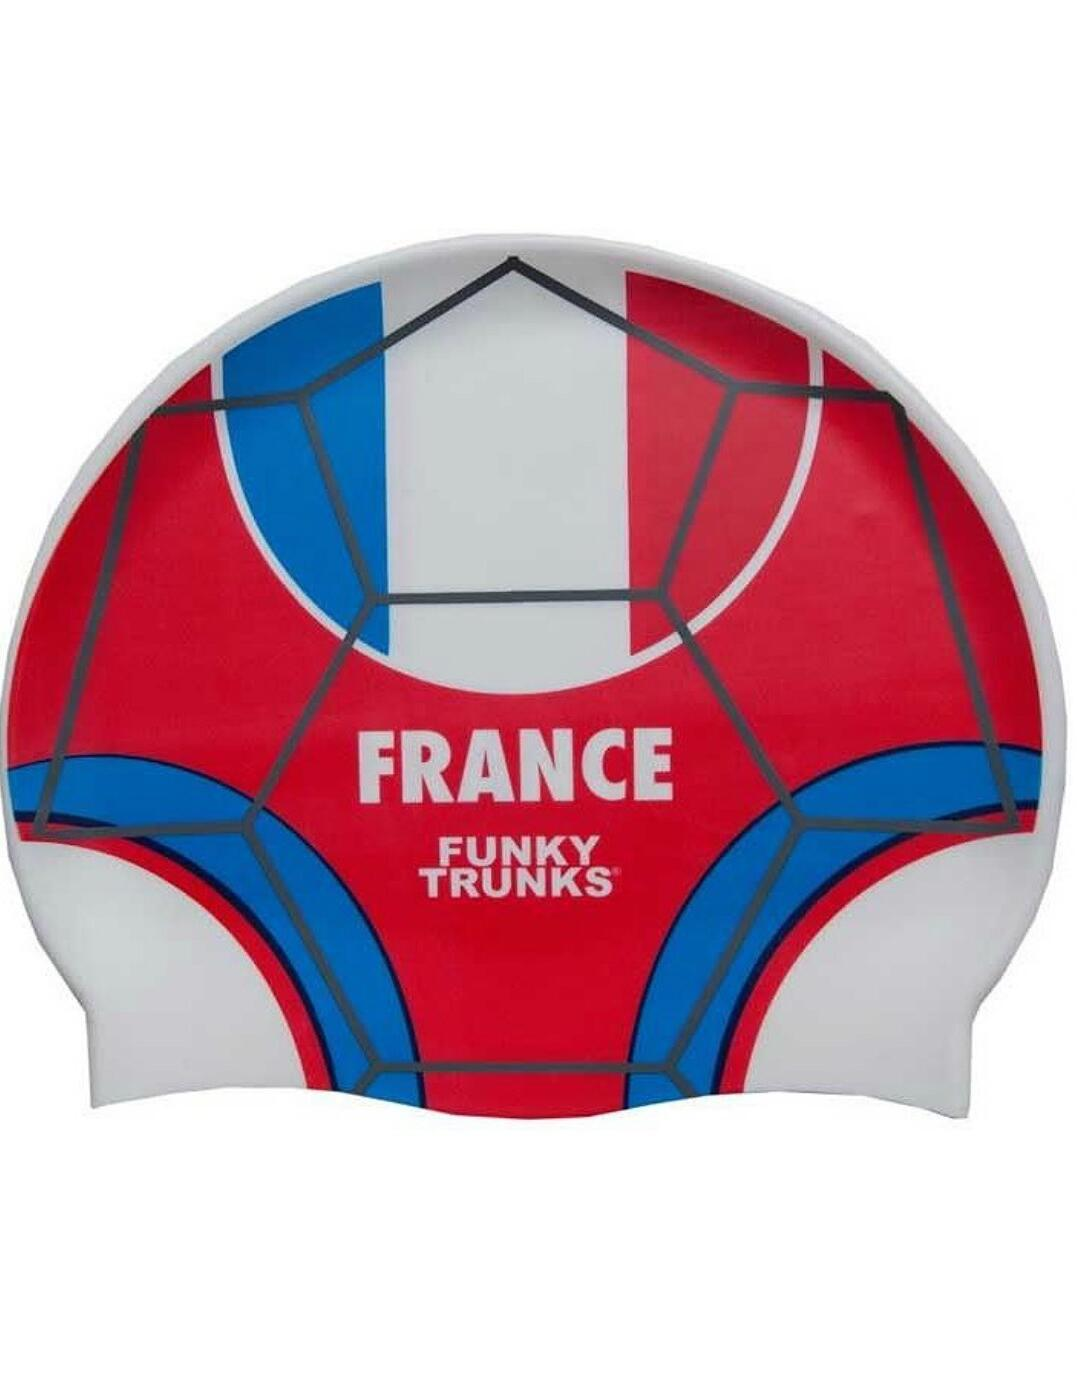 FT9900674 Funky Trunks Silicone Swimming Cap - FT9900674 Les Bleus